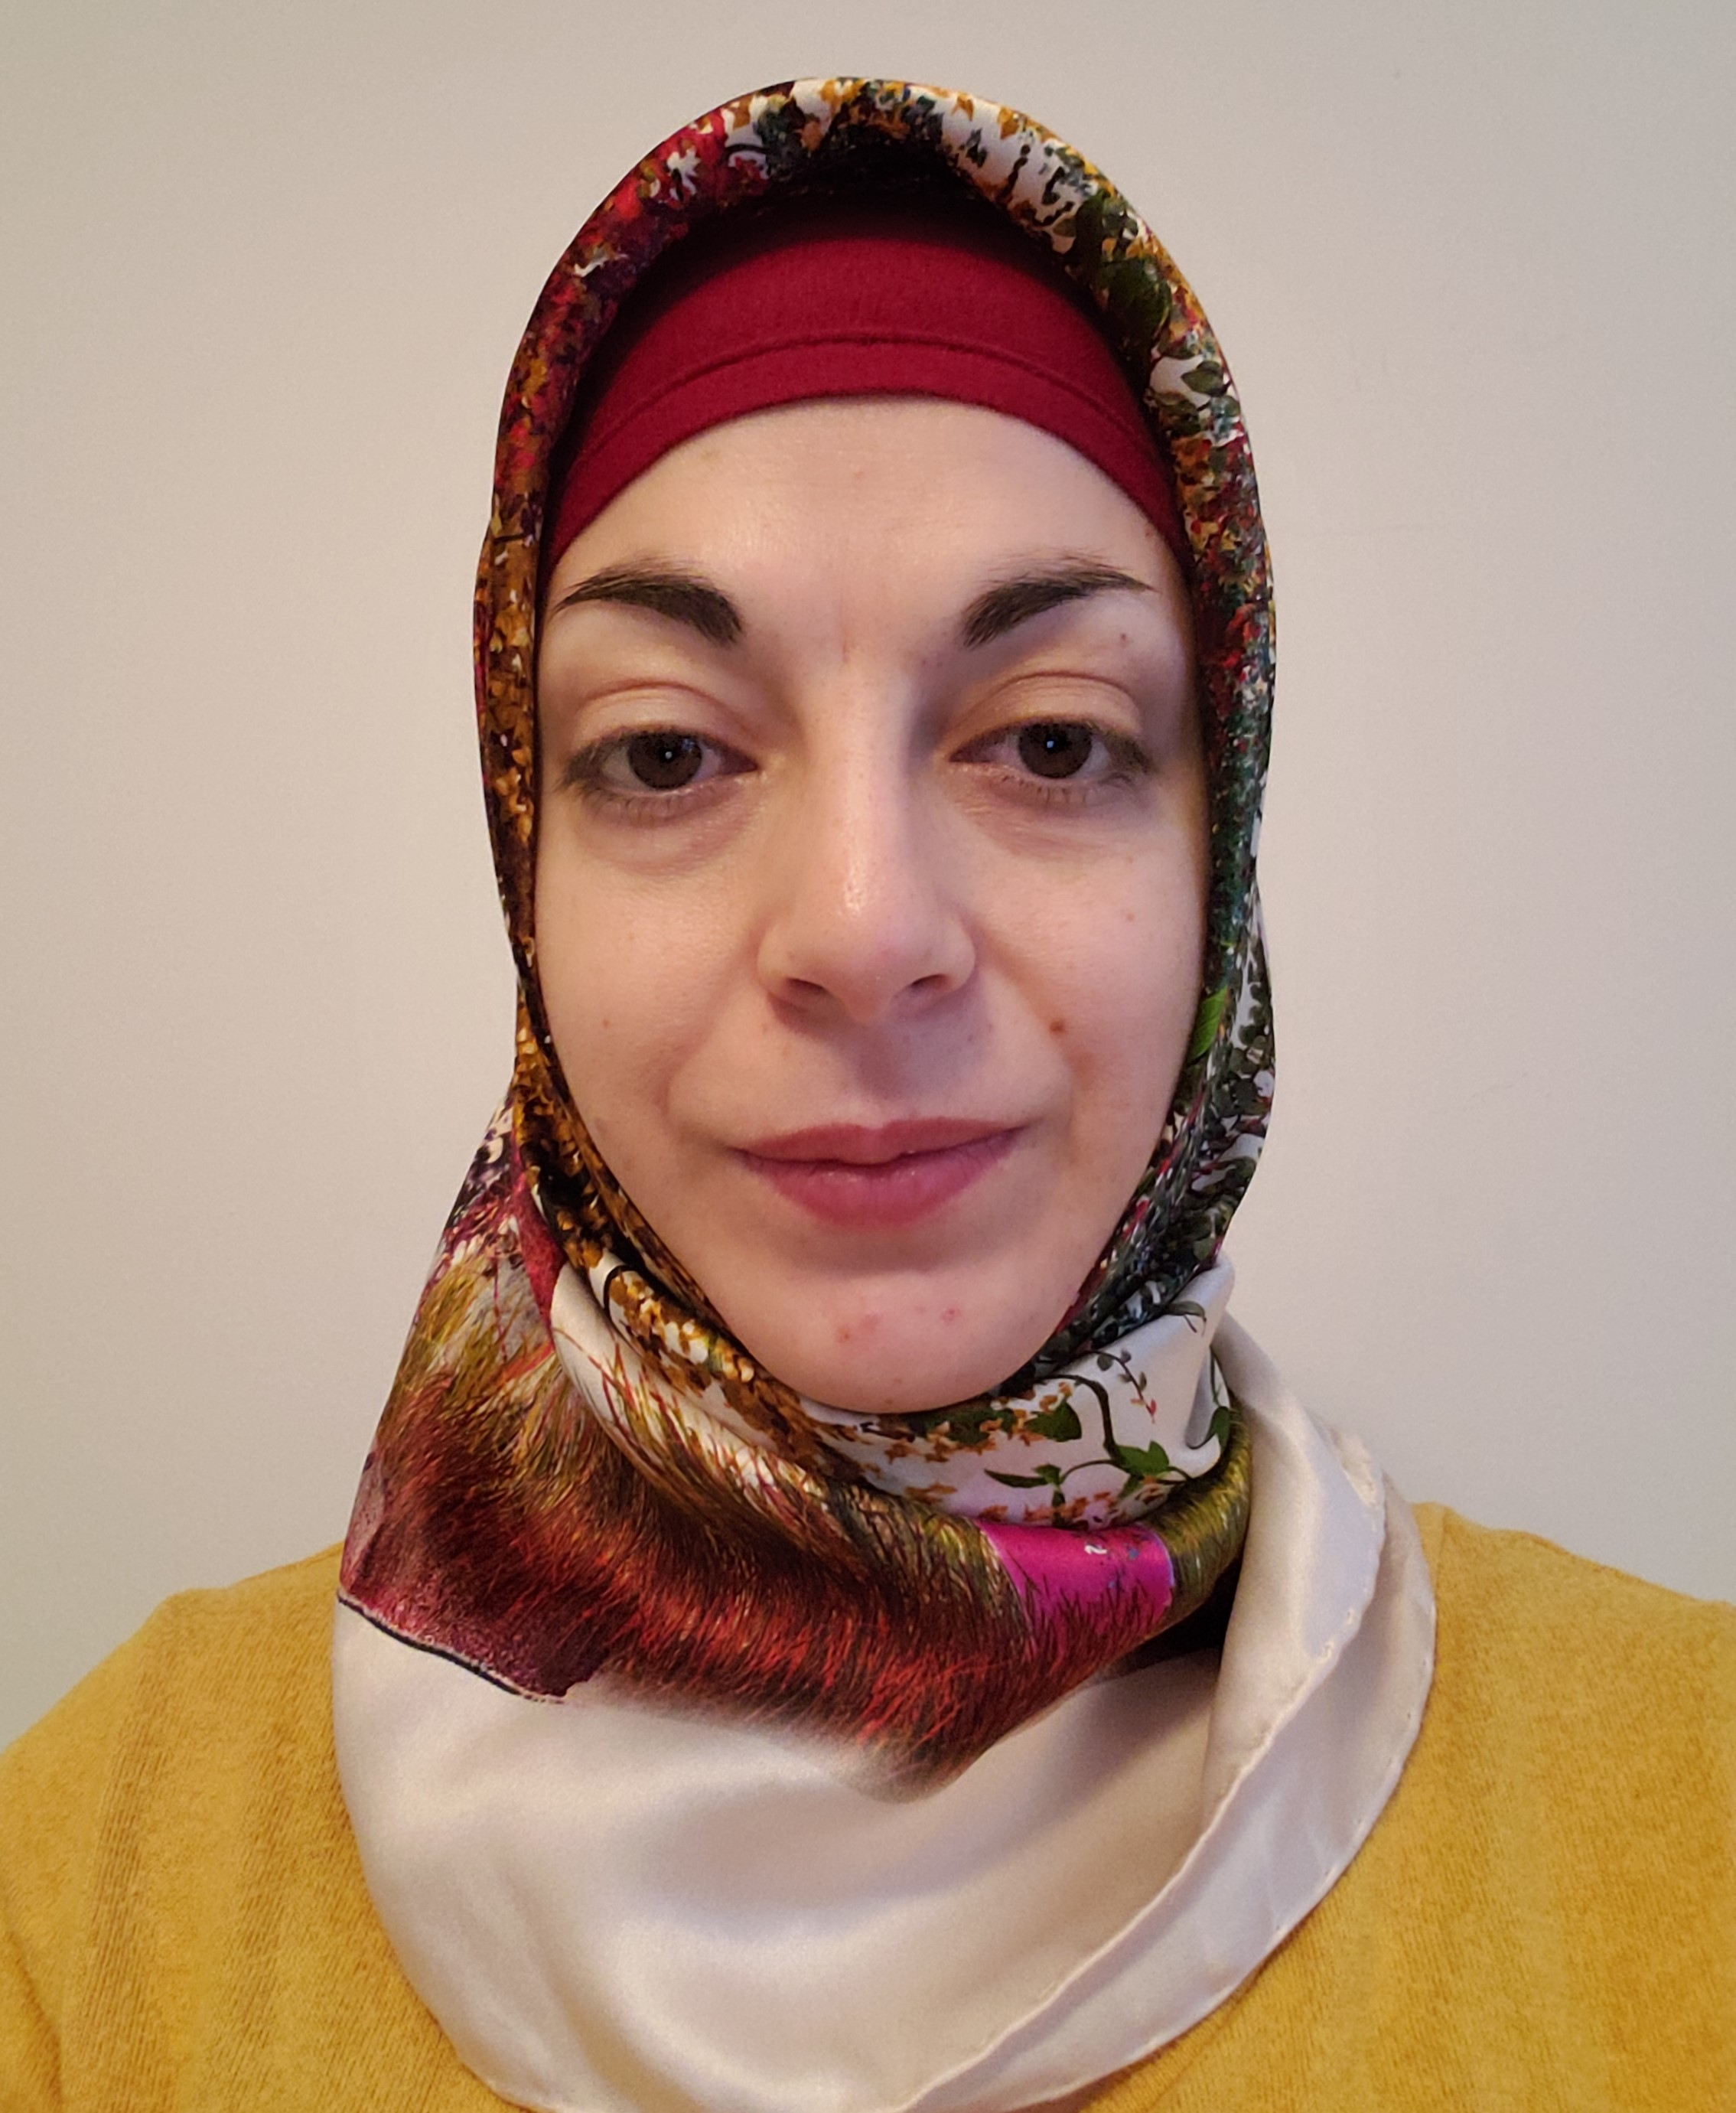 <strong><strong><strong><strong><strong>Ms. Vesile Uzun, Infant Assistant Teacher</strong></strong></strong></strong></strong>